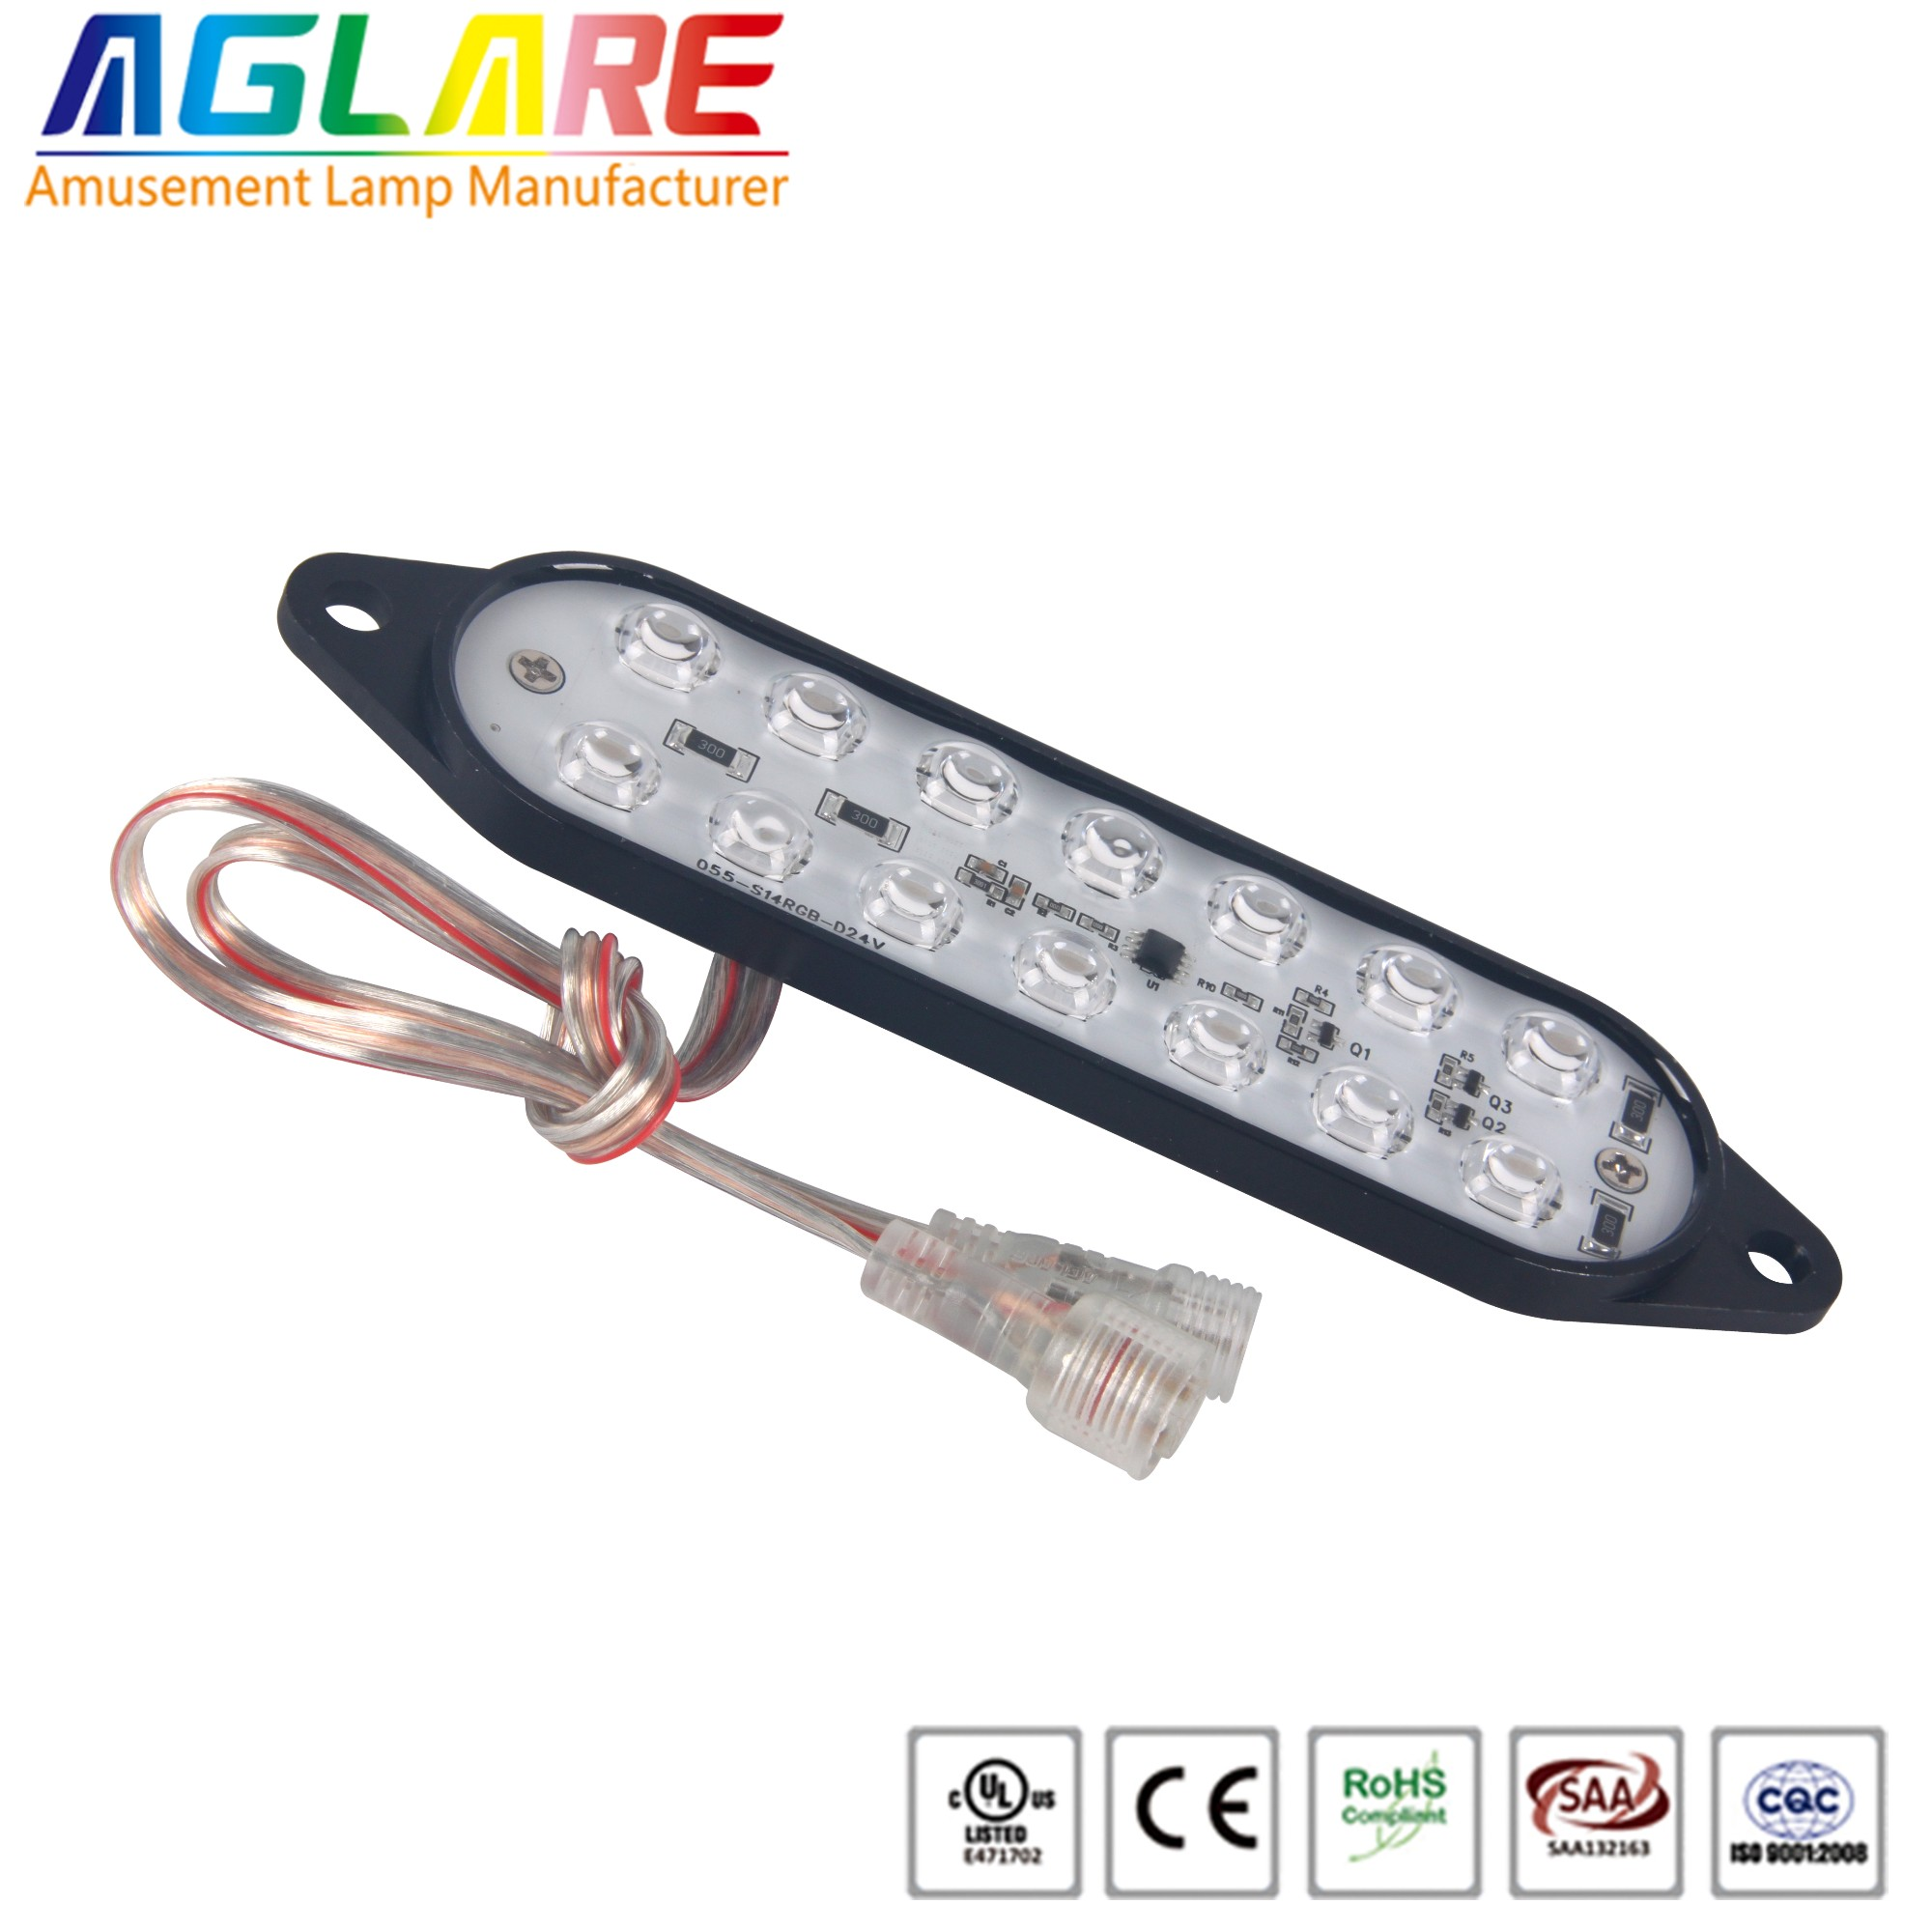 DC24V 14LEDS  Programmable rgb aluminium led amuse...